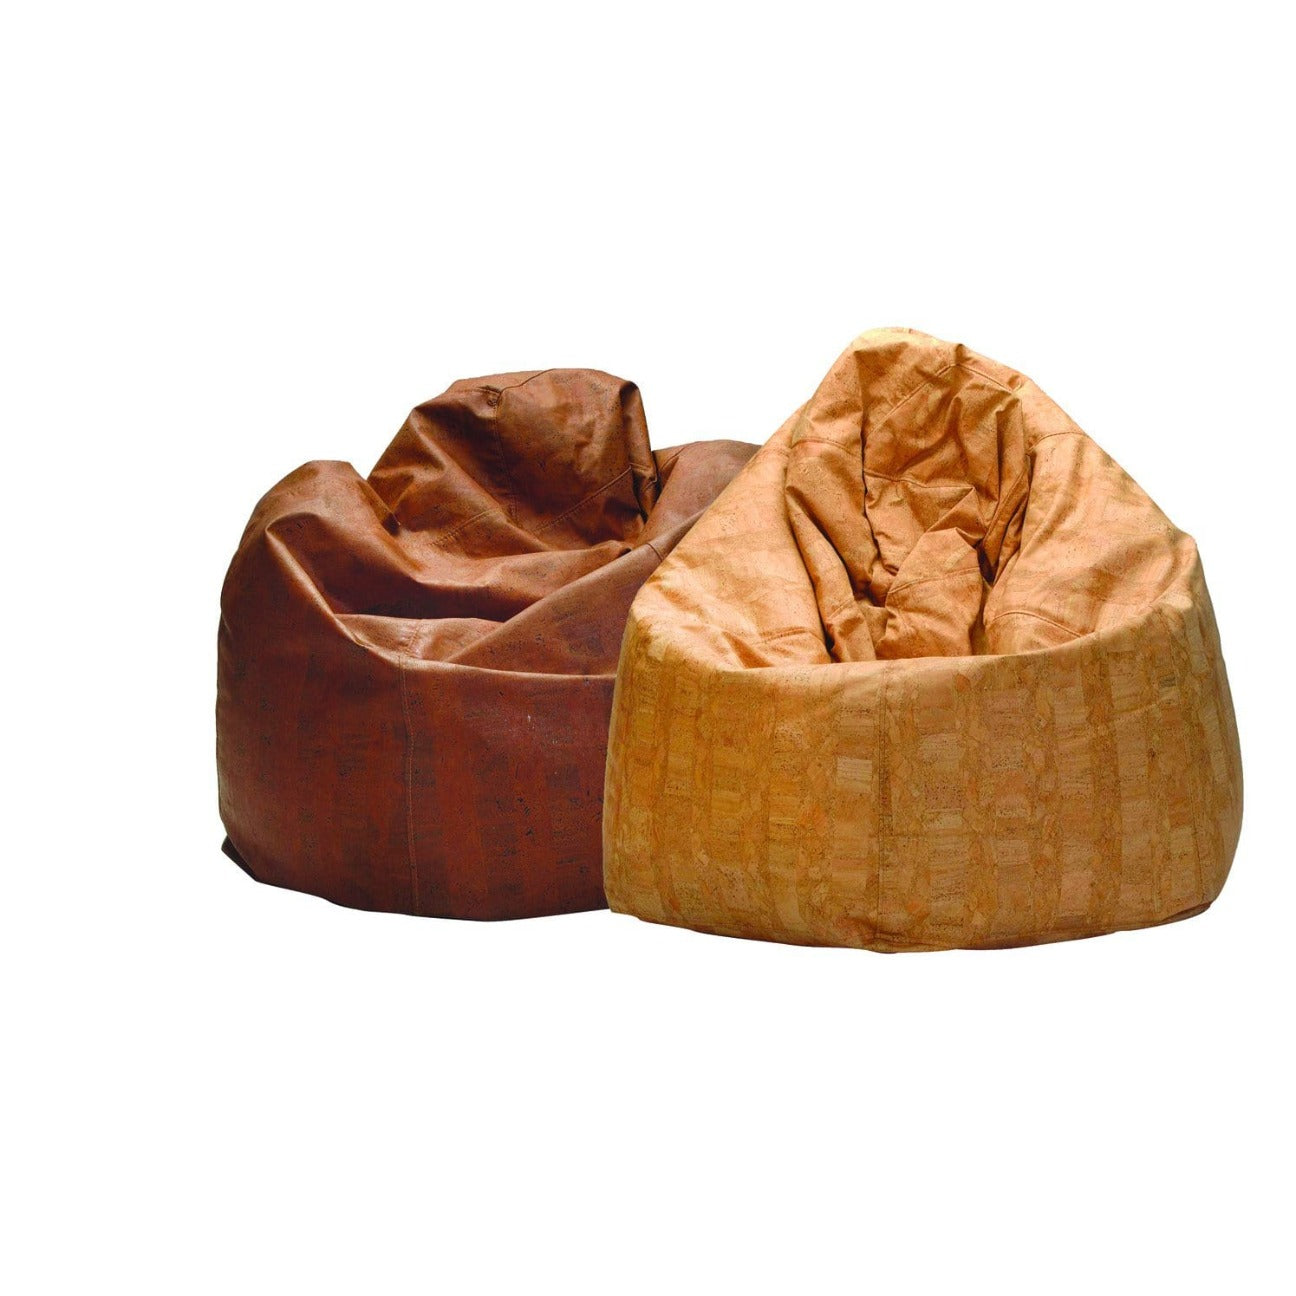 Big Pear Pouffe - Cork Beanbag Chair - Beige - Naturally Anti-Microbial Hypoallergenic Sustainable Eco-Friendly Cork